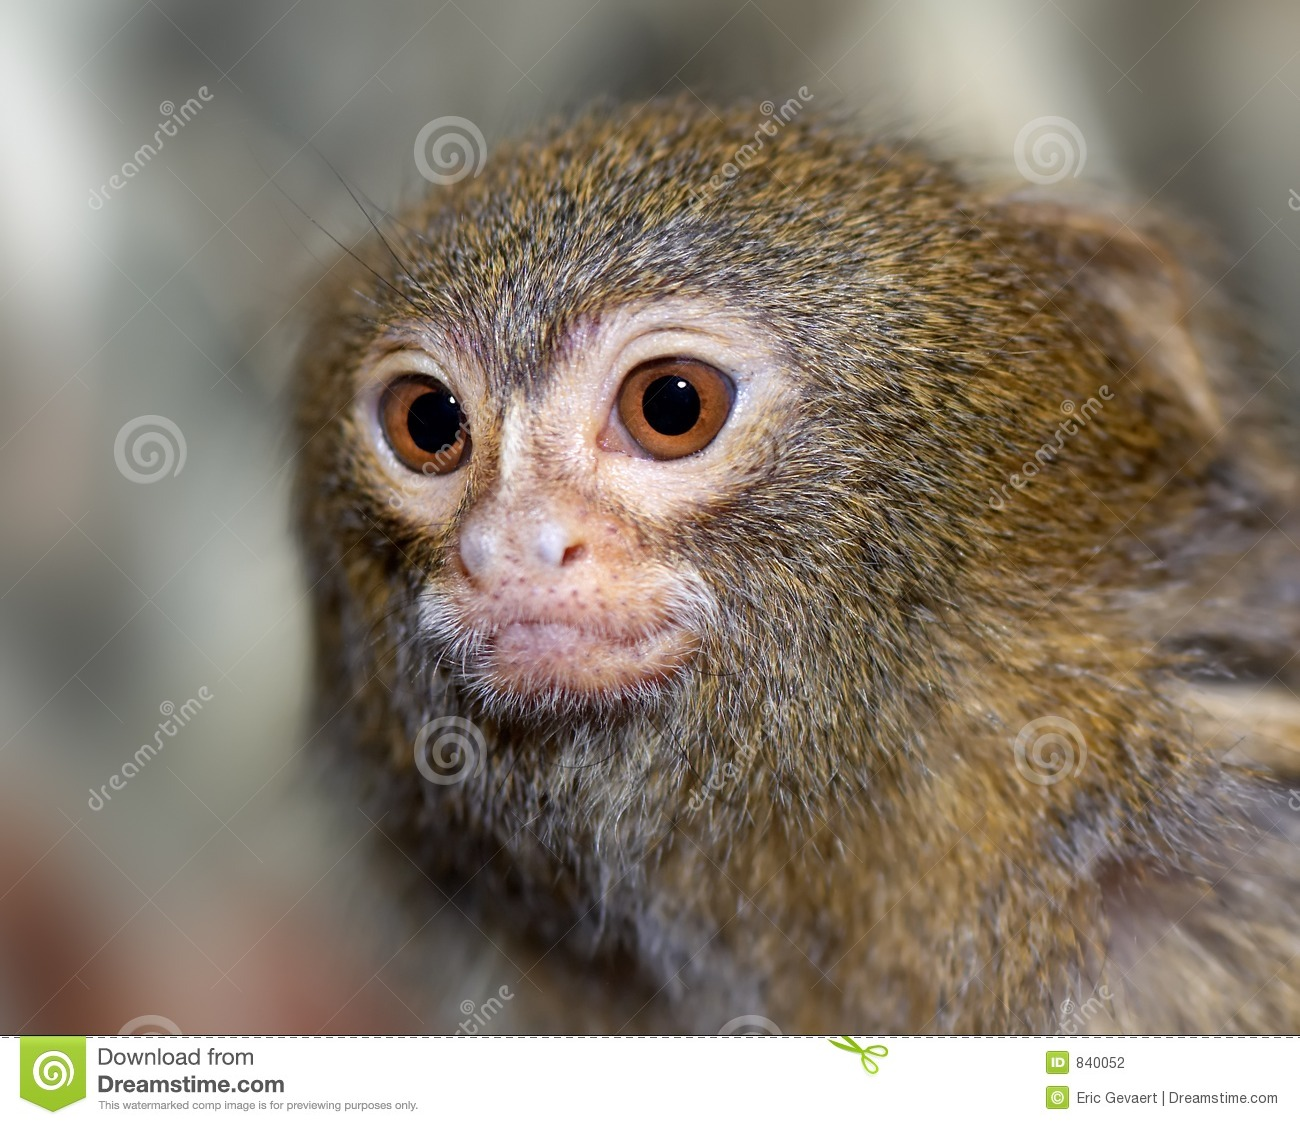 Close-up of a small monkey